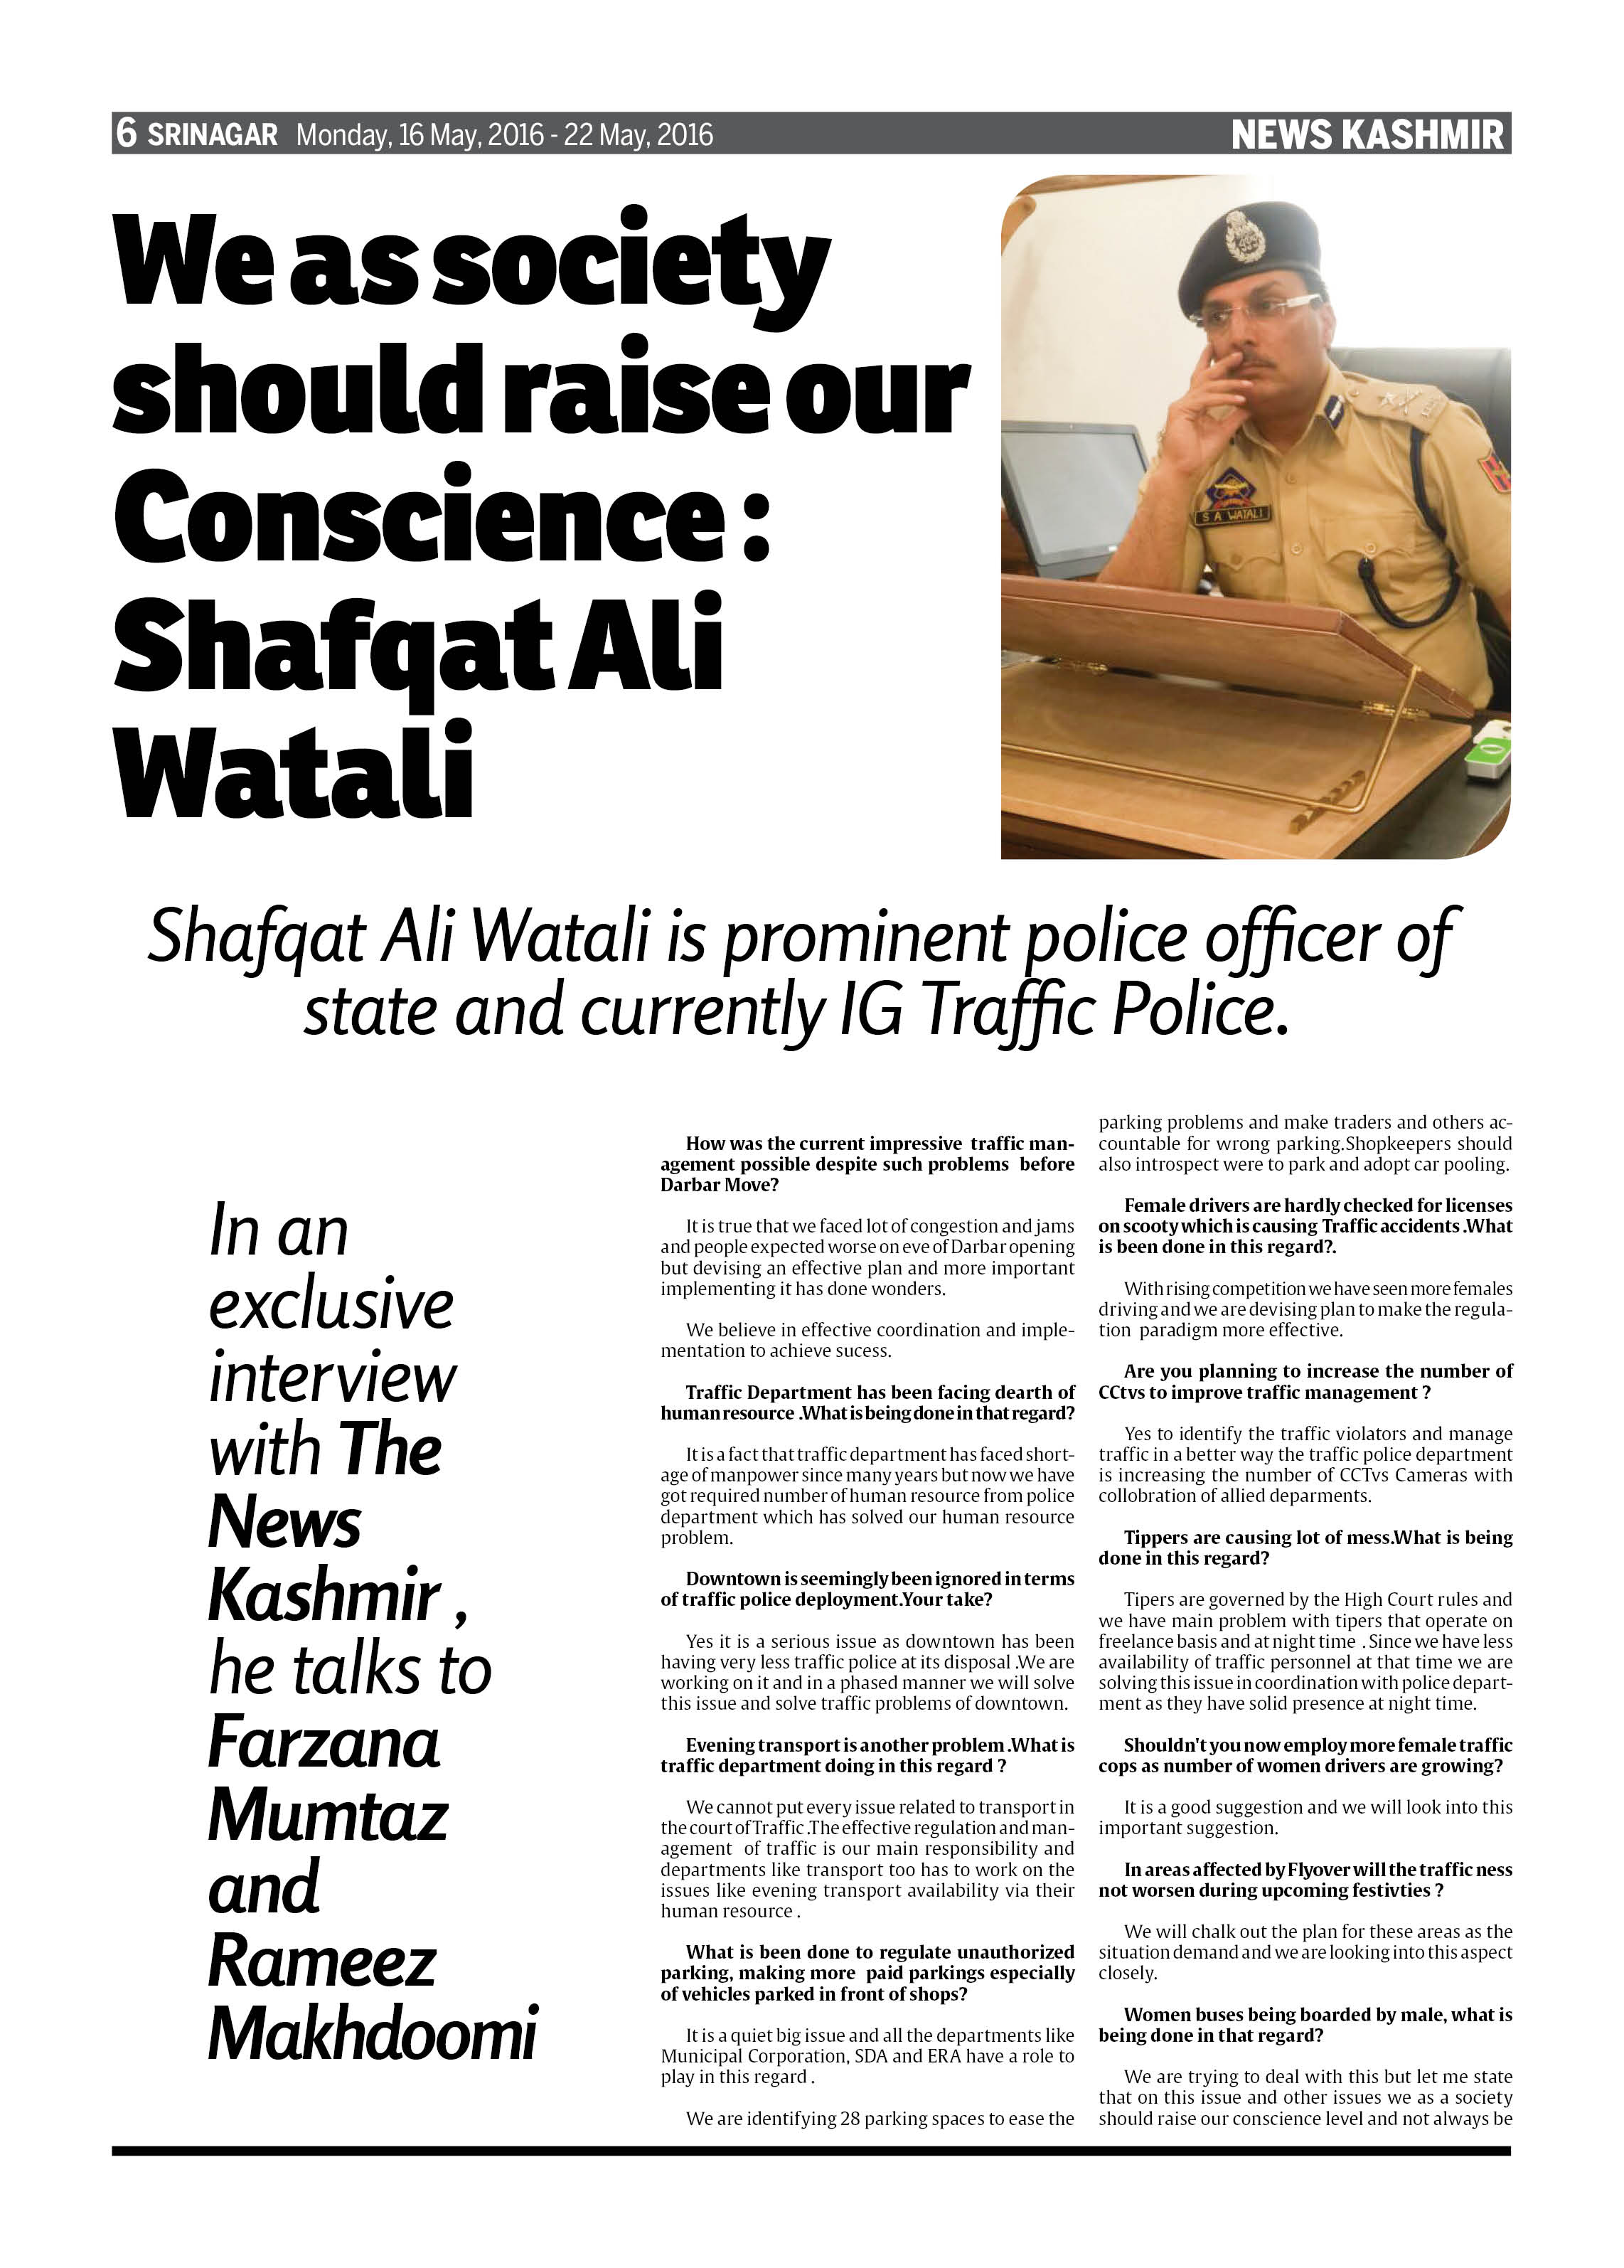 We as society should raise our Conscience : Shafqat Ali Watali,IG Traffic Police